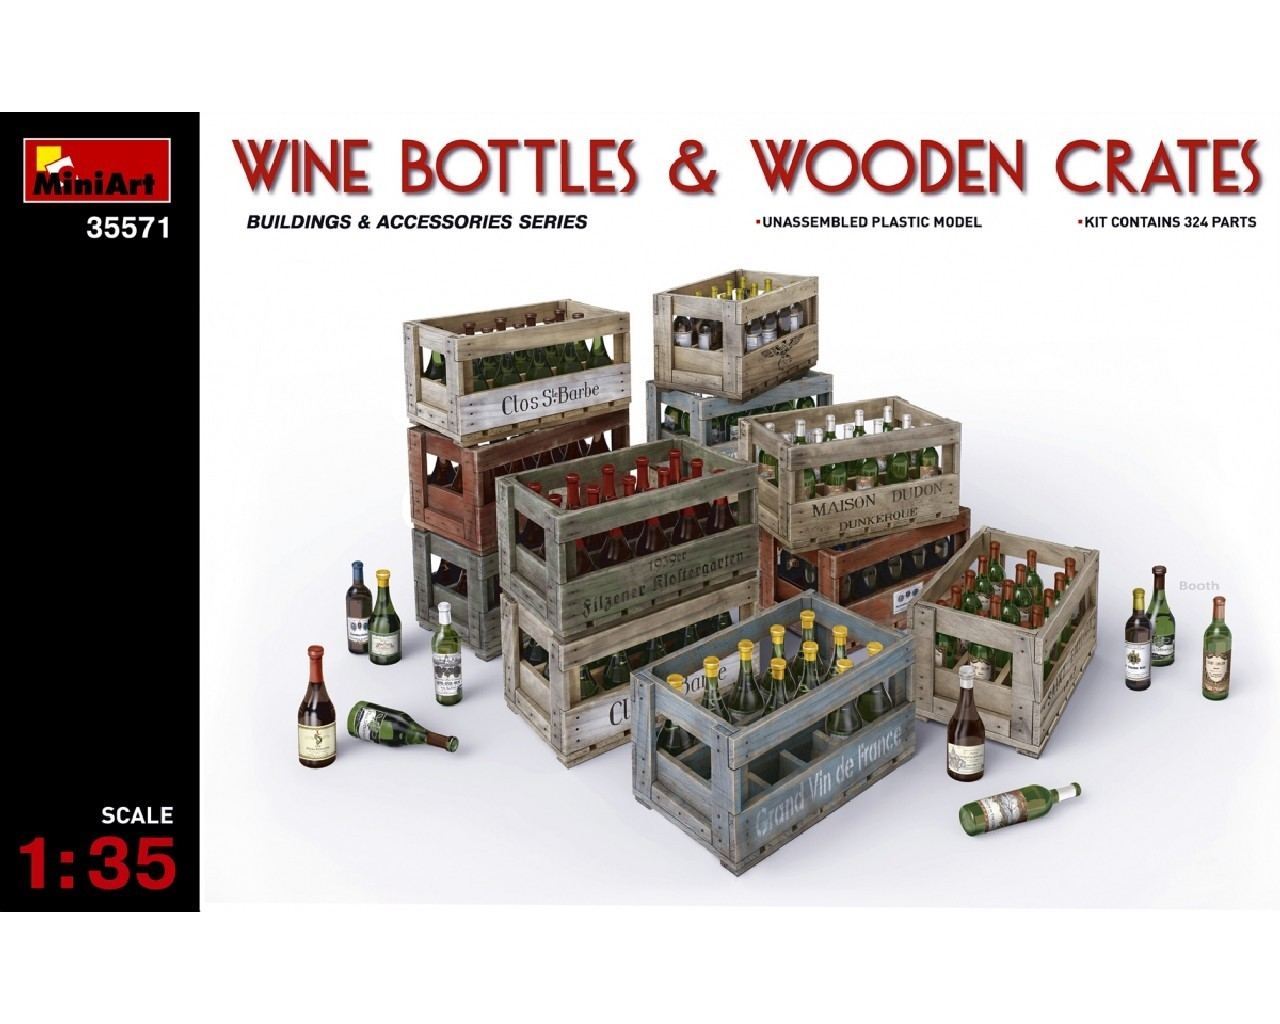 1/35 Wine Bottles and Wooden Crates